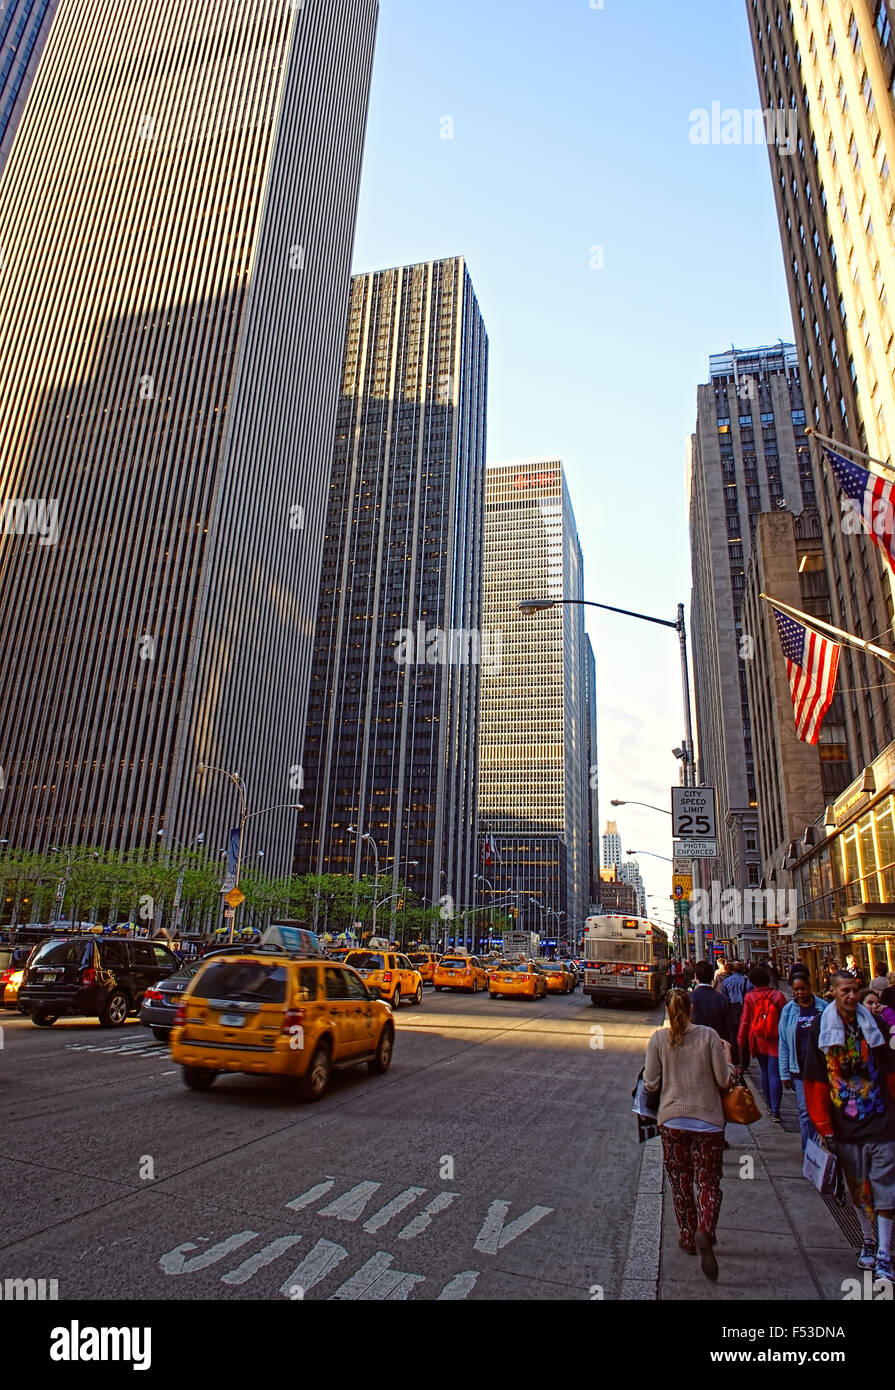 NEW YORK, USA - MAY 07, 2015: Typical Manhattan scenery with yellow cabs speeding through busy street of New York - Stock Image